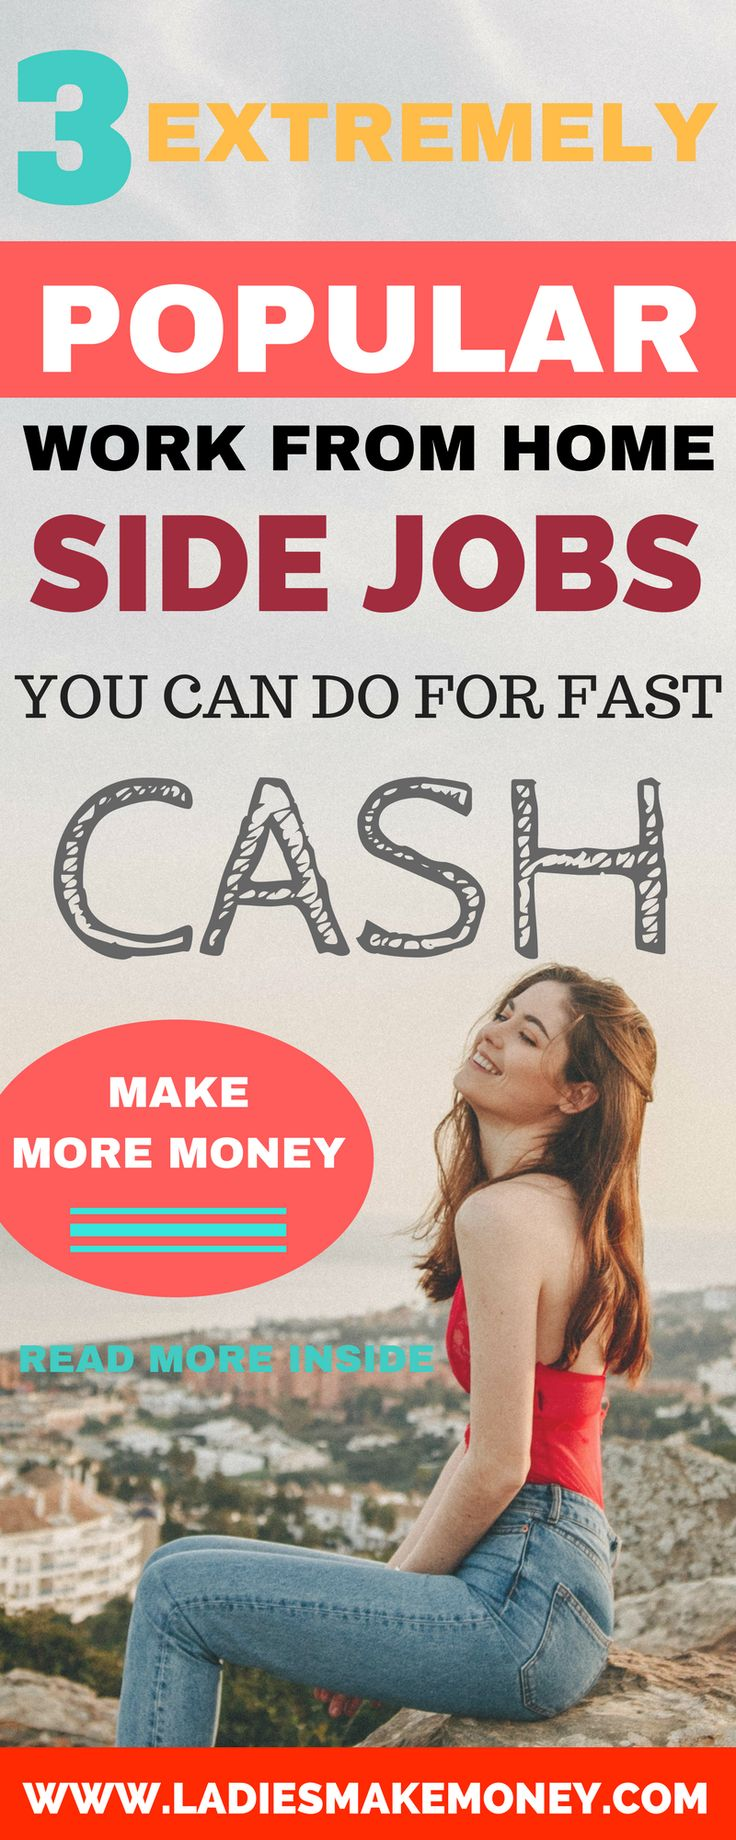 3 Extremely Popular Work from Home Side Jobs you can do for Fast Cash – Amanda Bannister